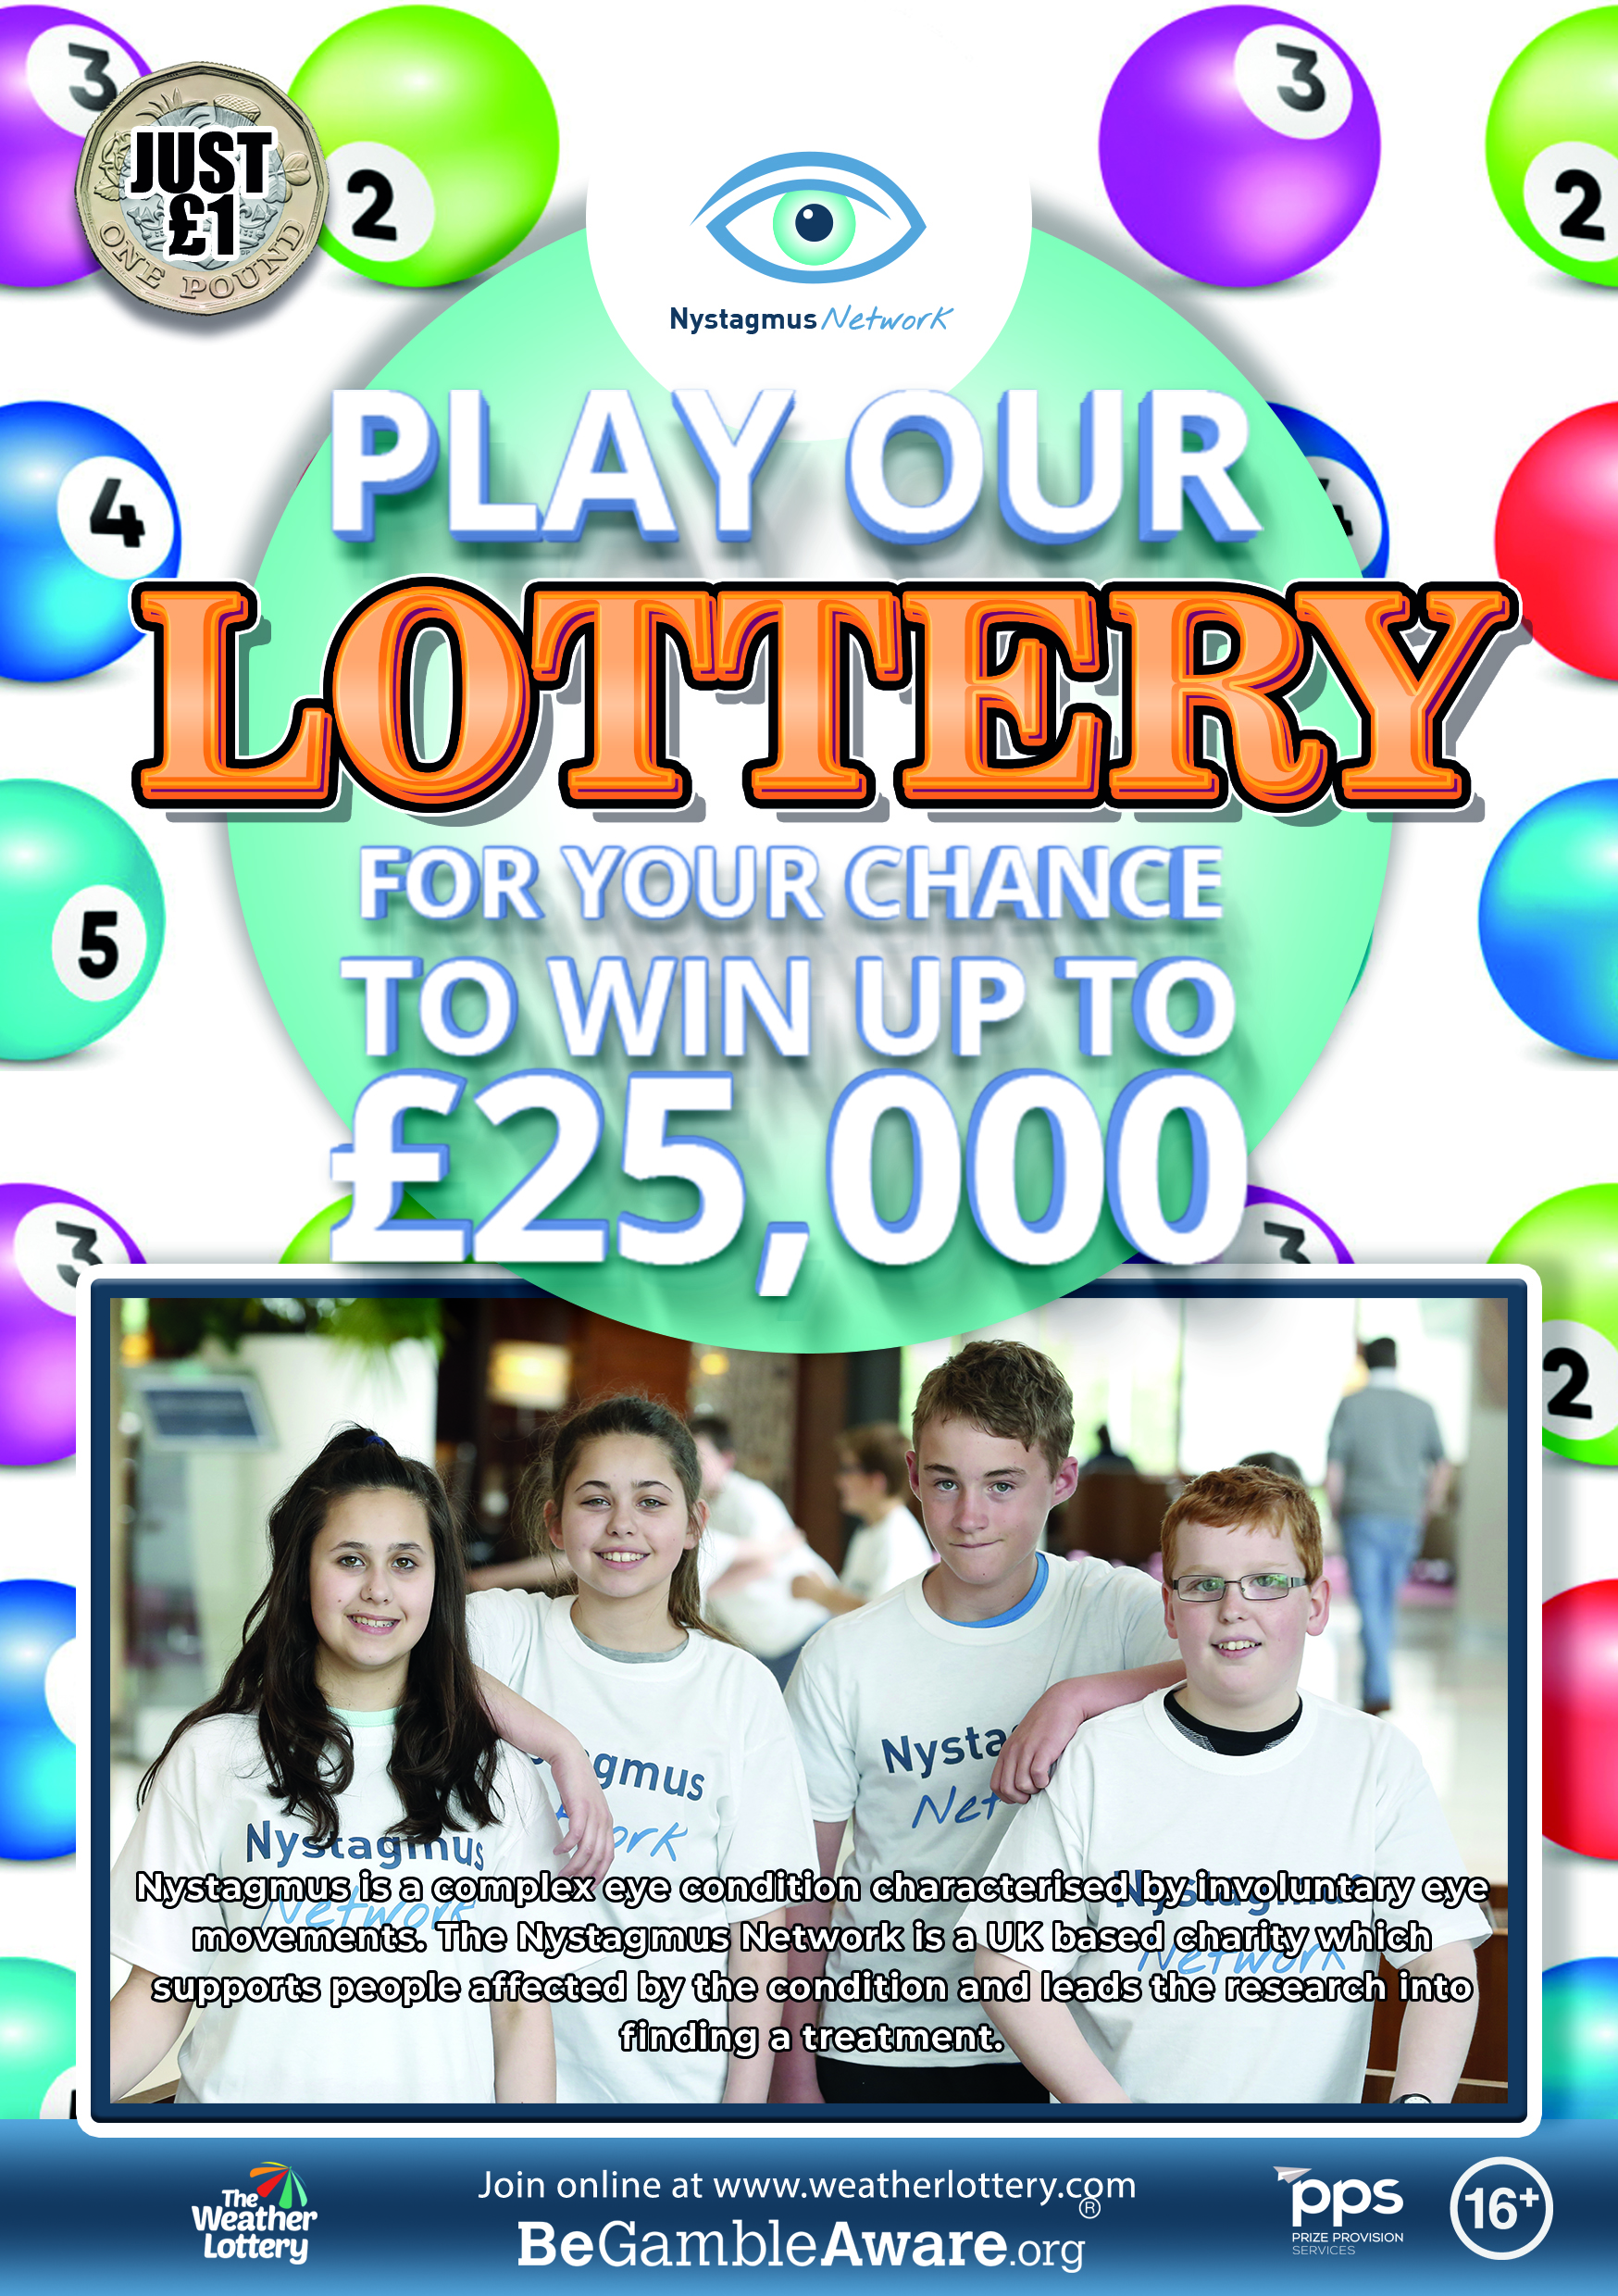 Join our lottery to win £25,000